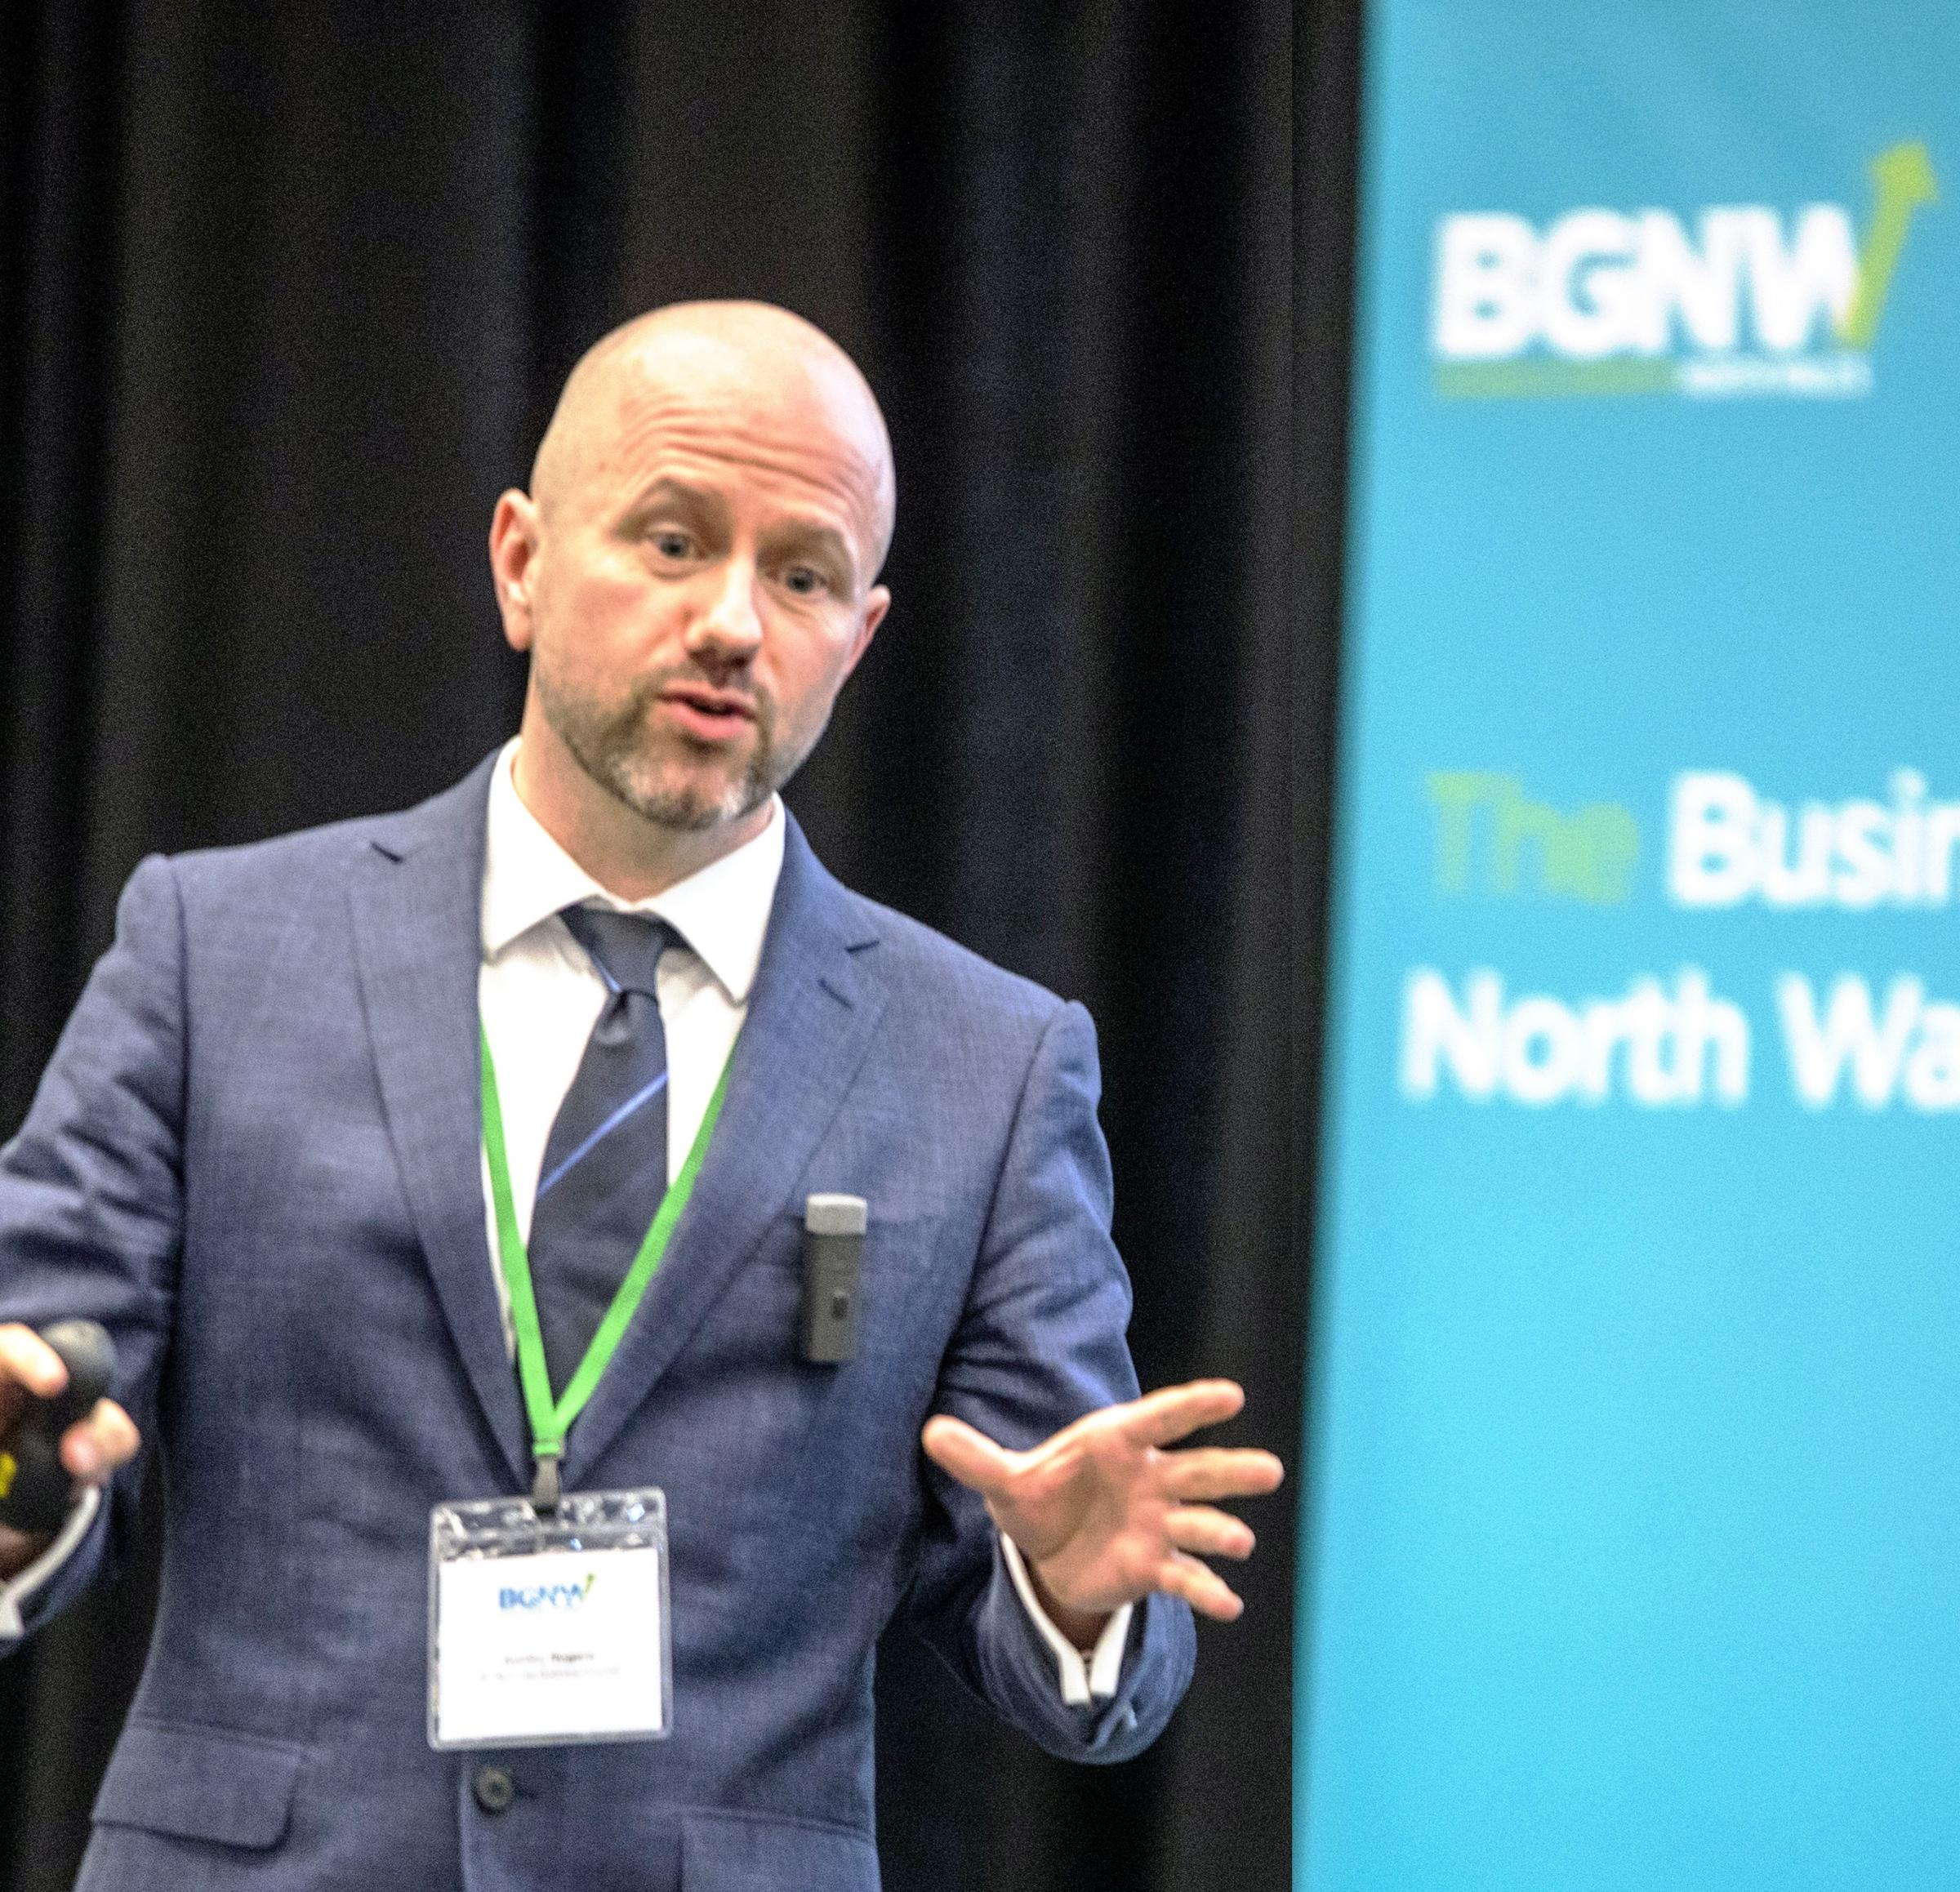 Business Growth North Wales Conference